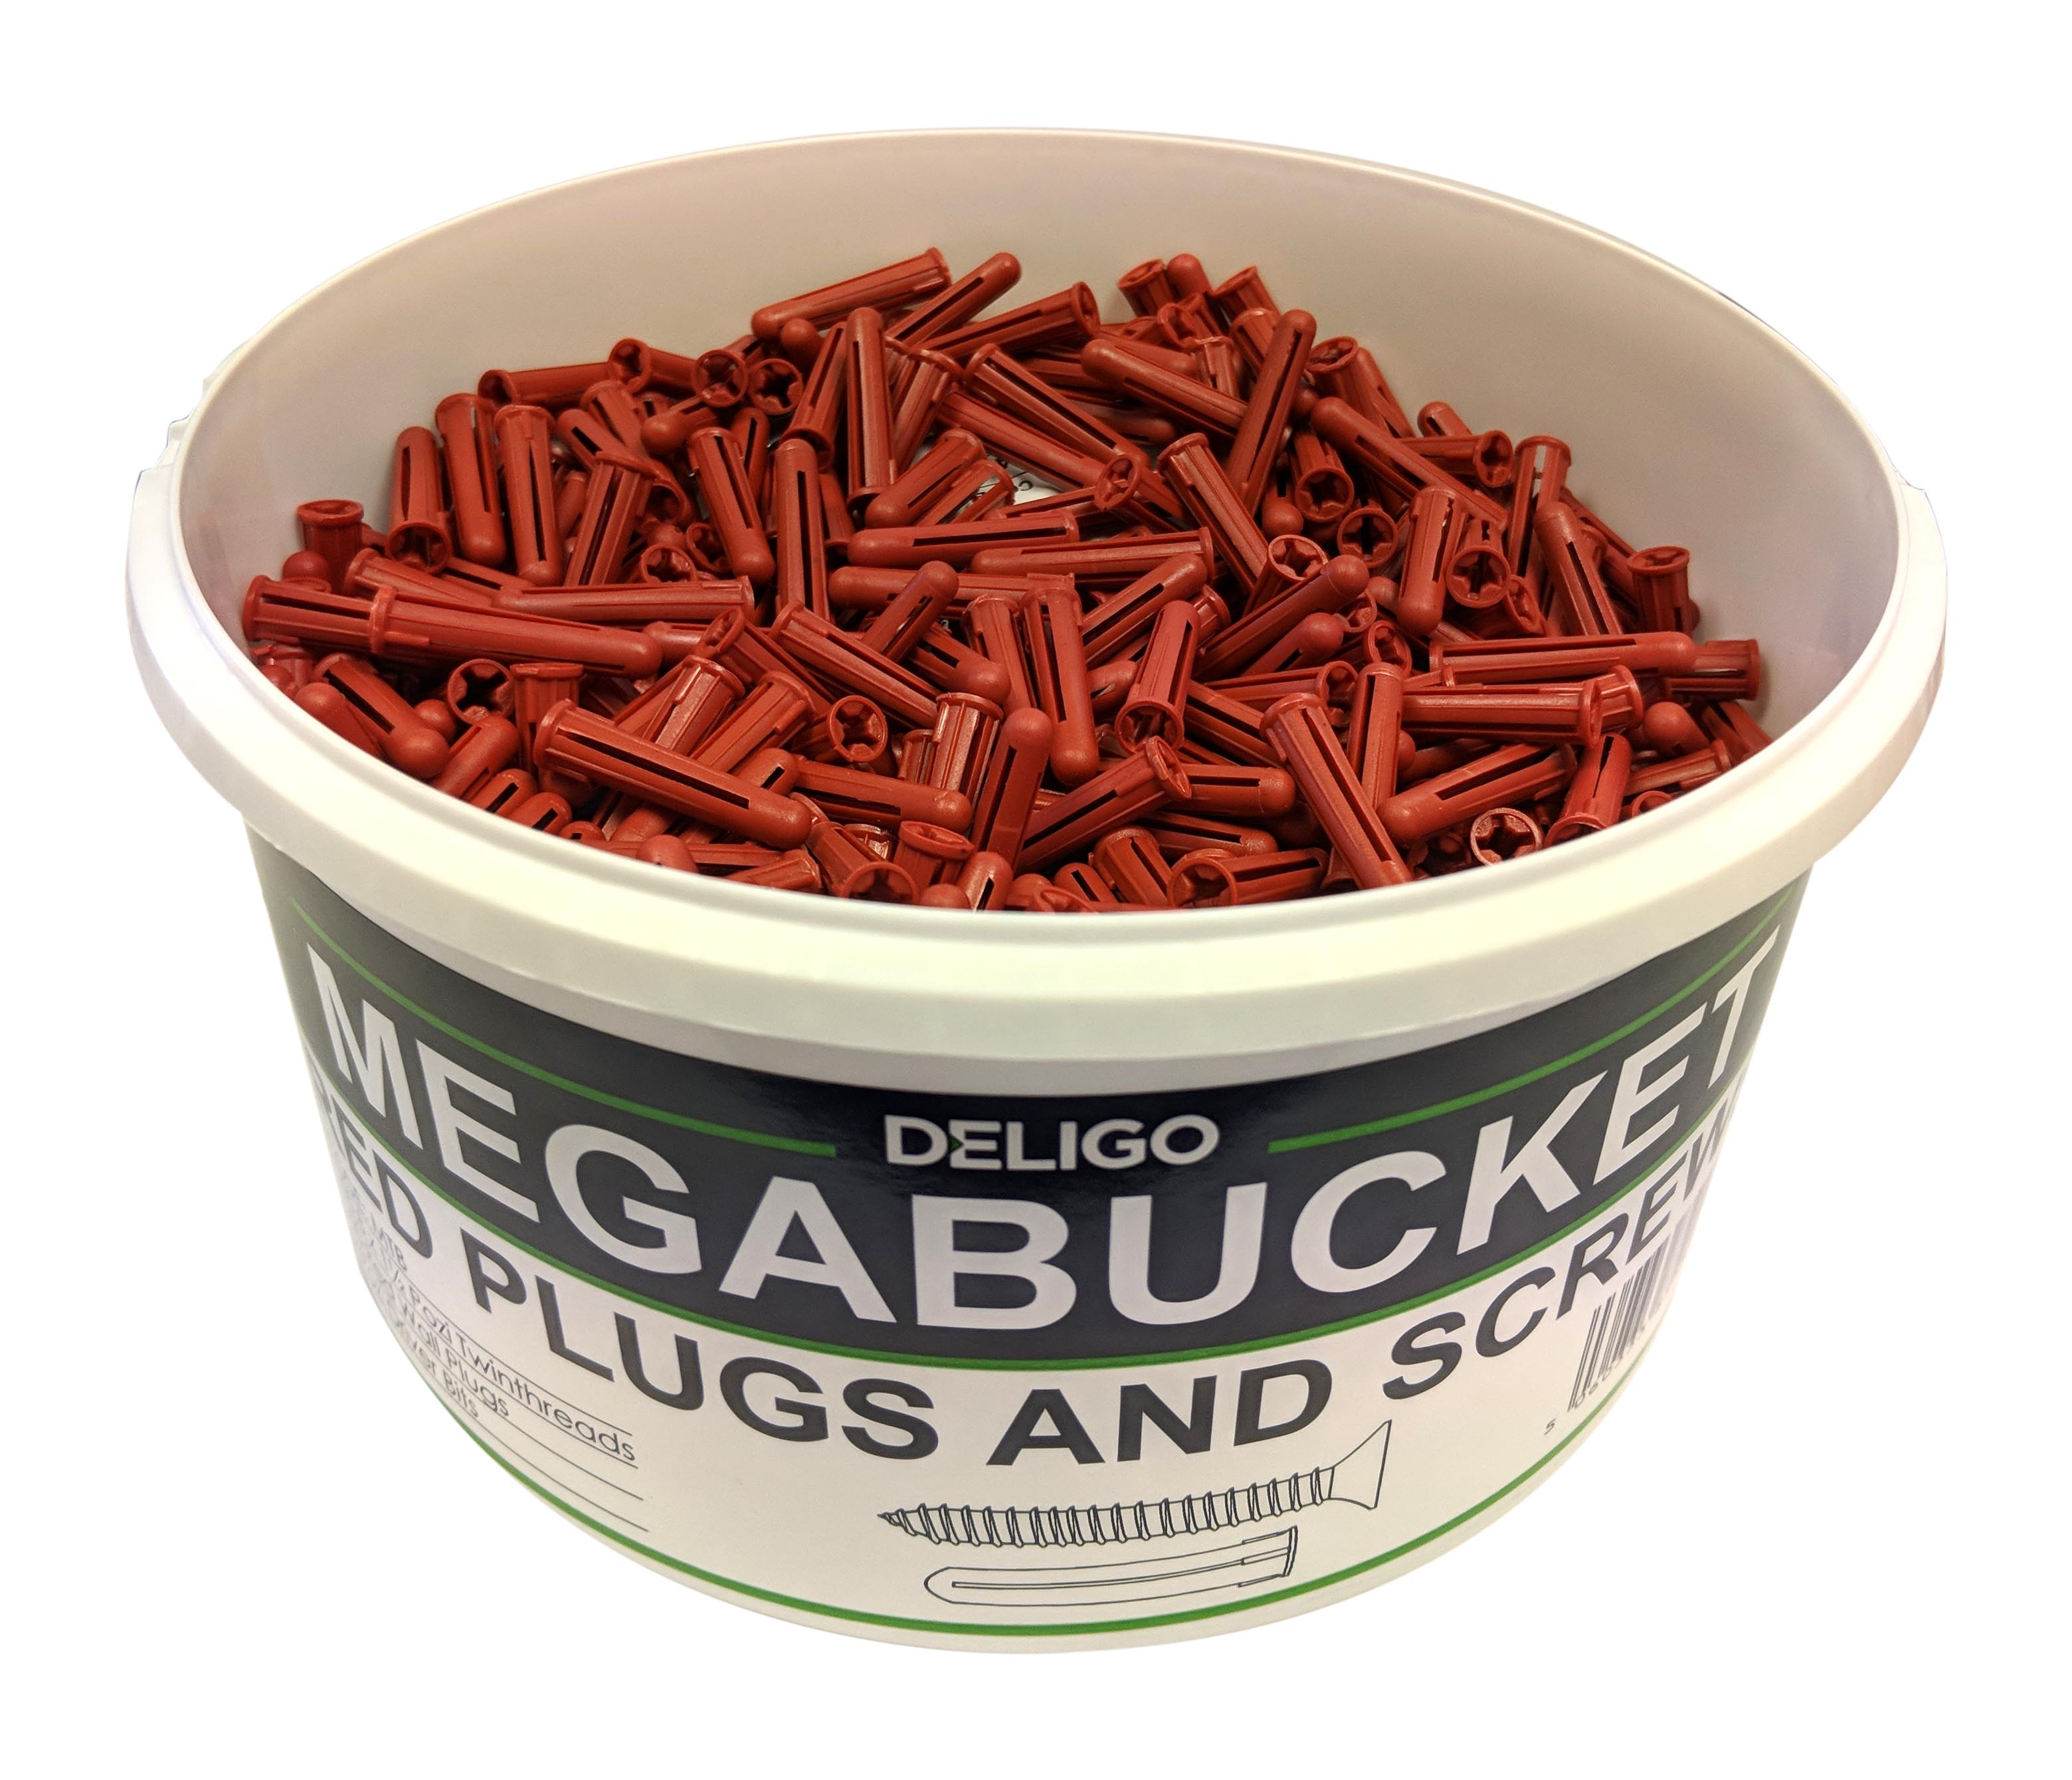 RED PLUGS & SCREWS MEGA BUCKET